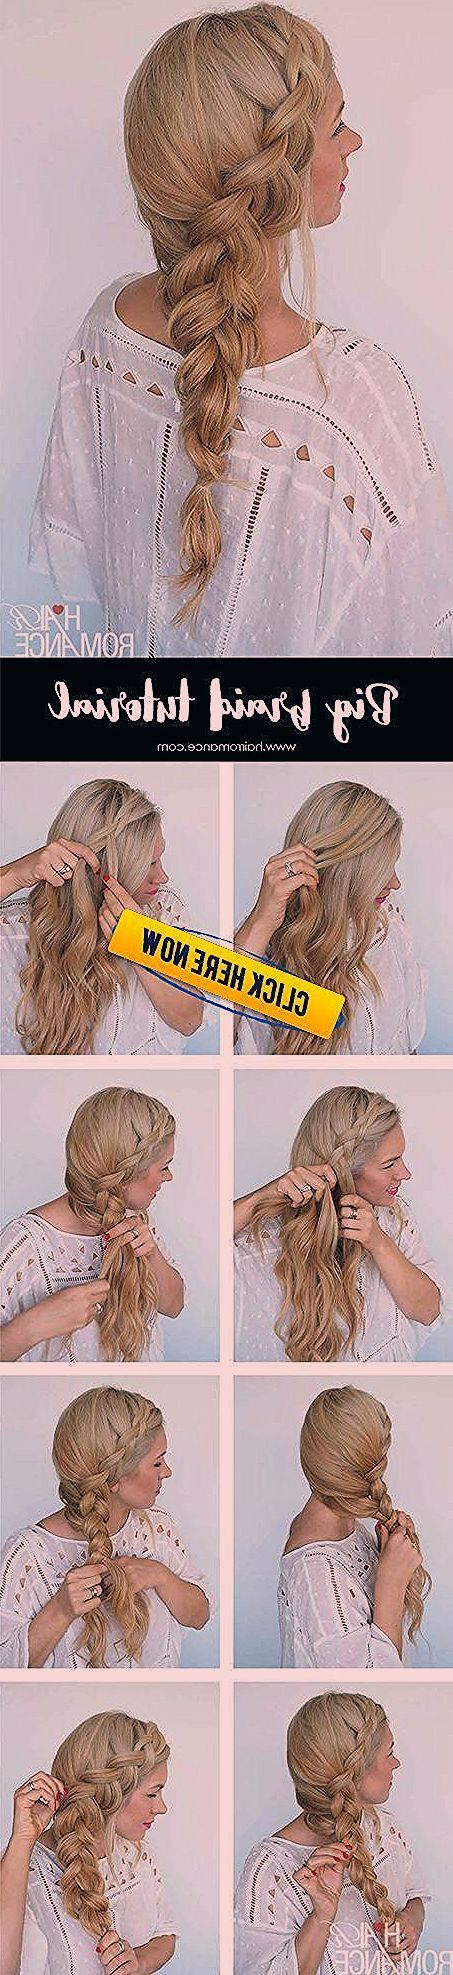 How to style a big side braid instant mermaid hair Chanel lipstick Giveaway: Ho  How to style a big side braid instant mermaid hair Chanel lipstick Giveaway: How to style a big side braid instant mermaid hair Chanel lipstick Giveaway: # side Braids pictures #sidebraidhairstyles